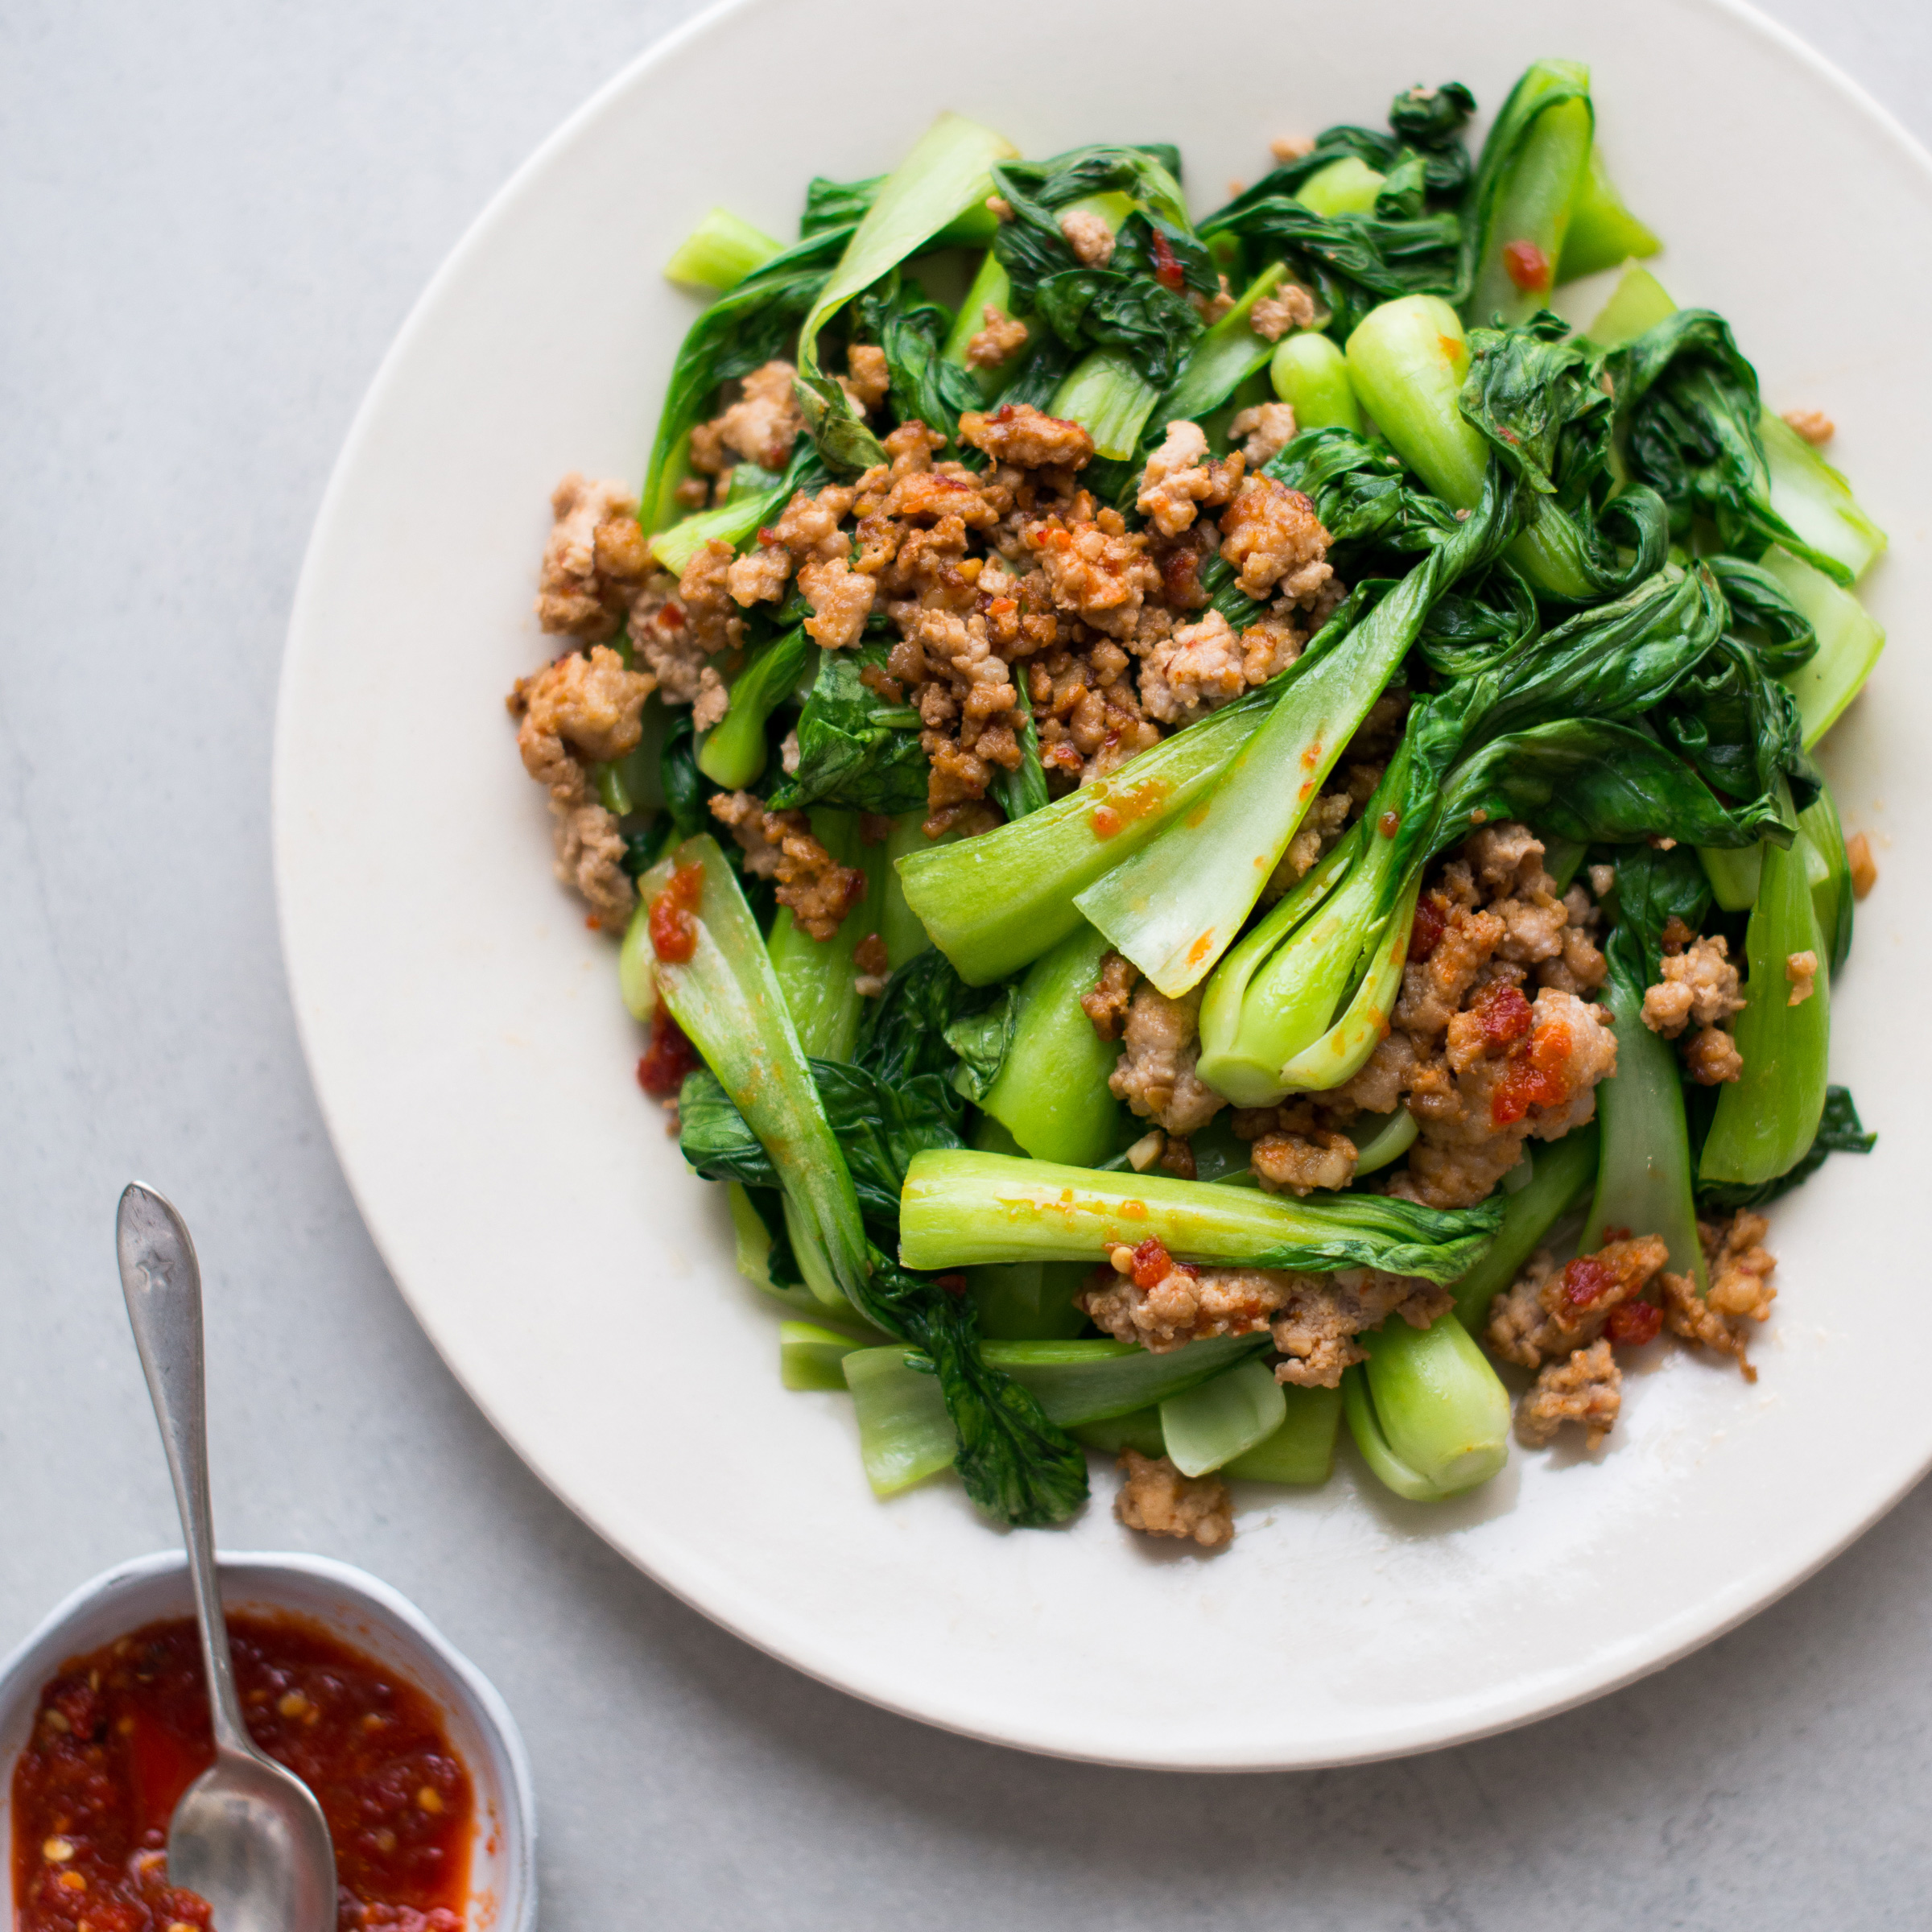 Recipes with bok choy and pork